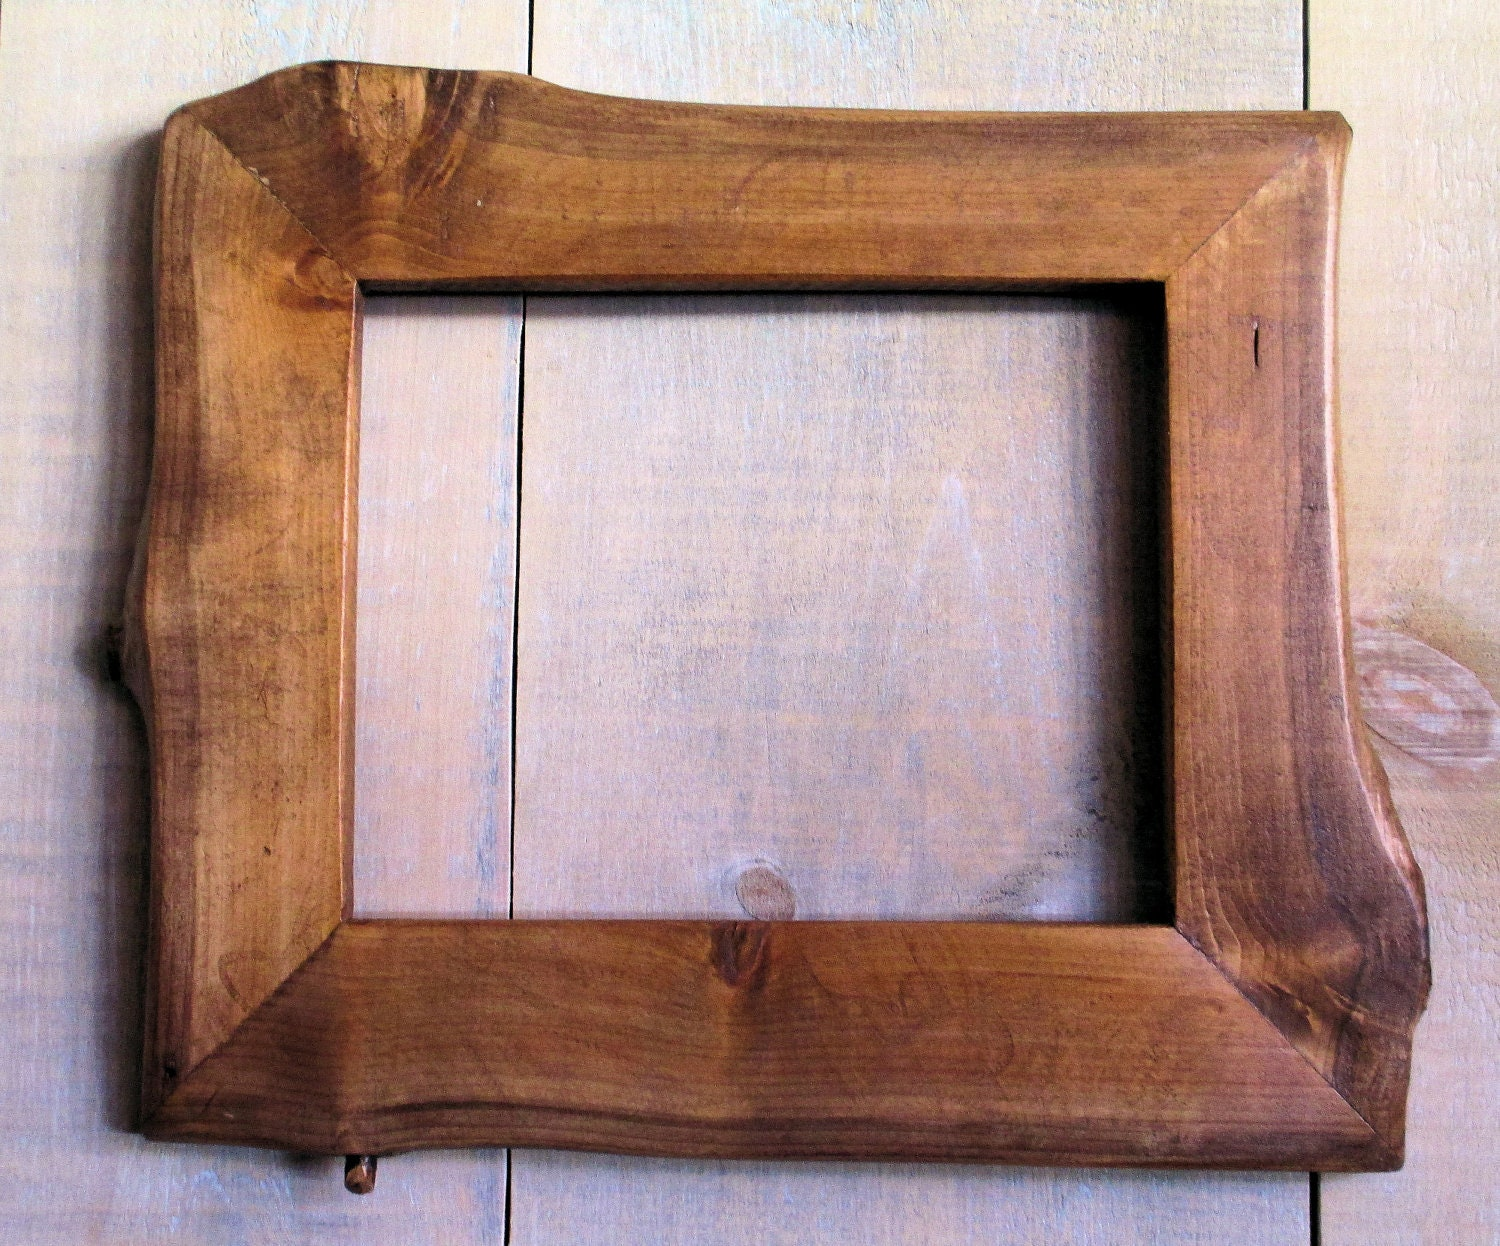 Handmade Rustic Wood Frame 7 1/2 x 9 3/4 Golden Oak